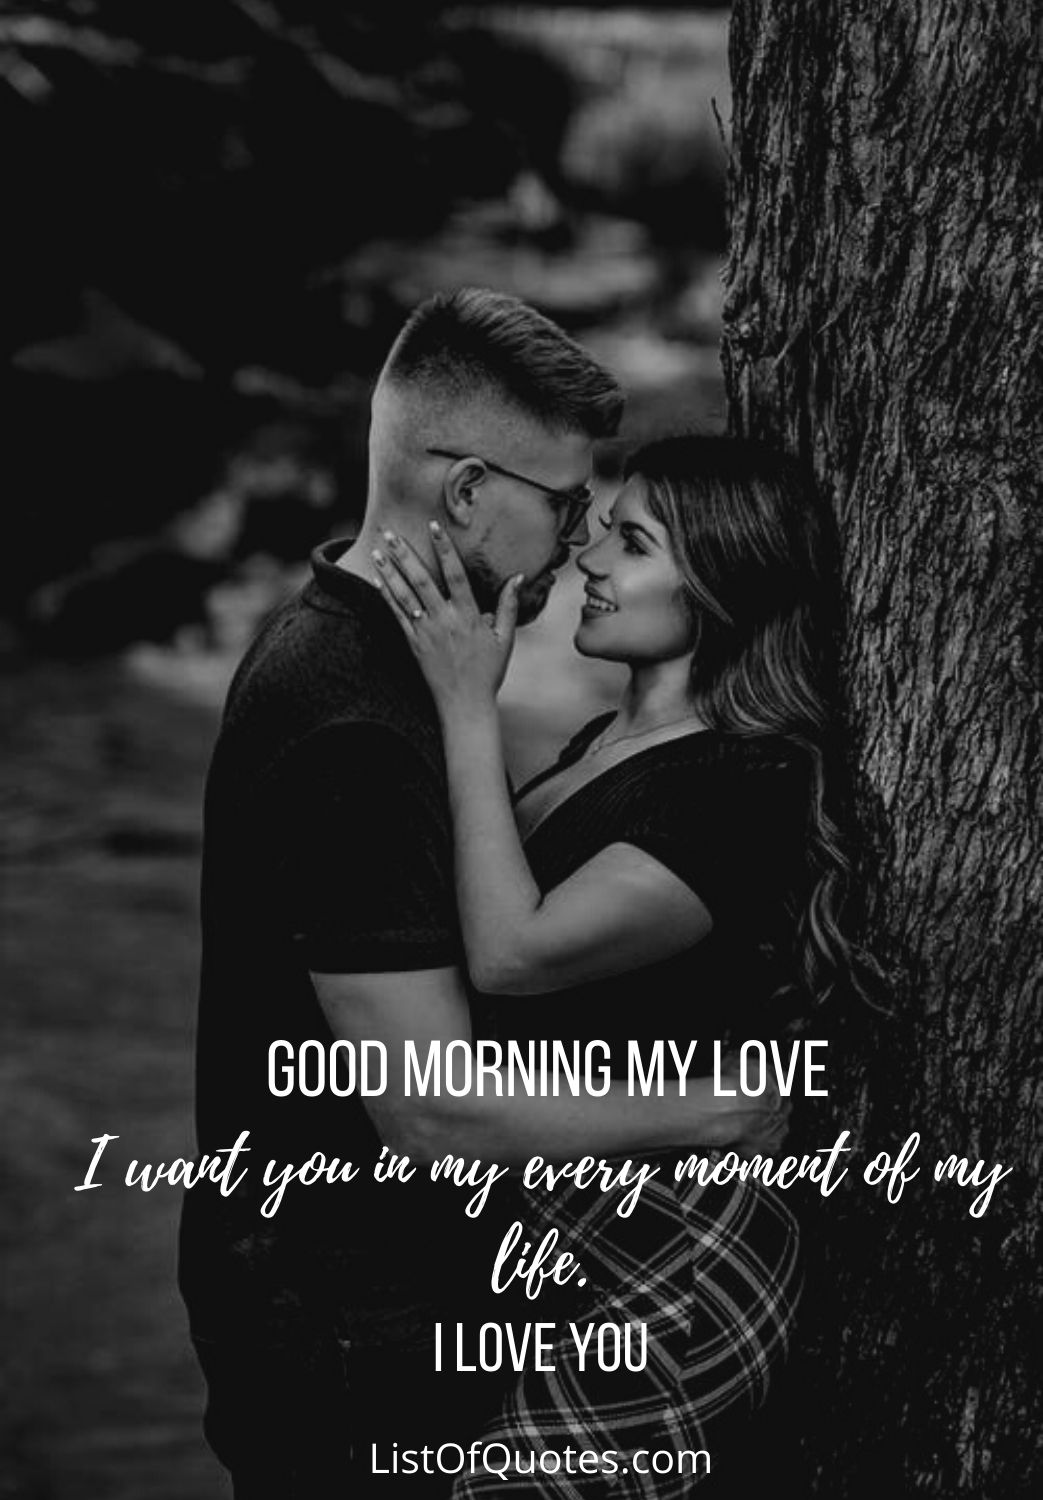 romantic heart touching good morning messages quotes wishes for husband wife(hd picture free download)